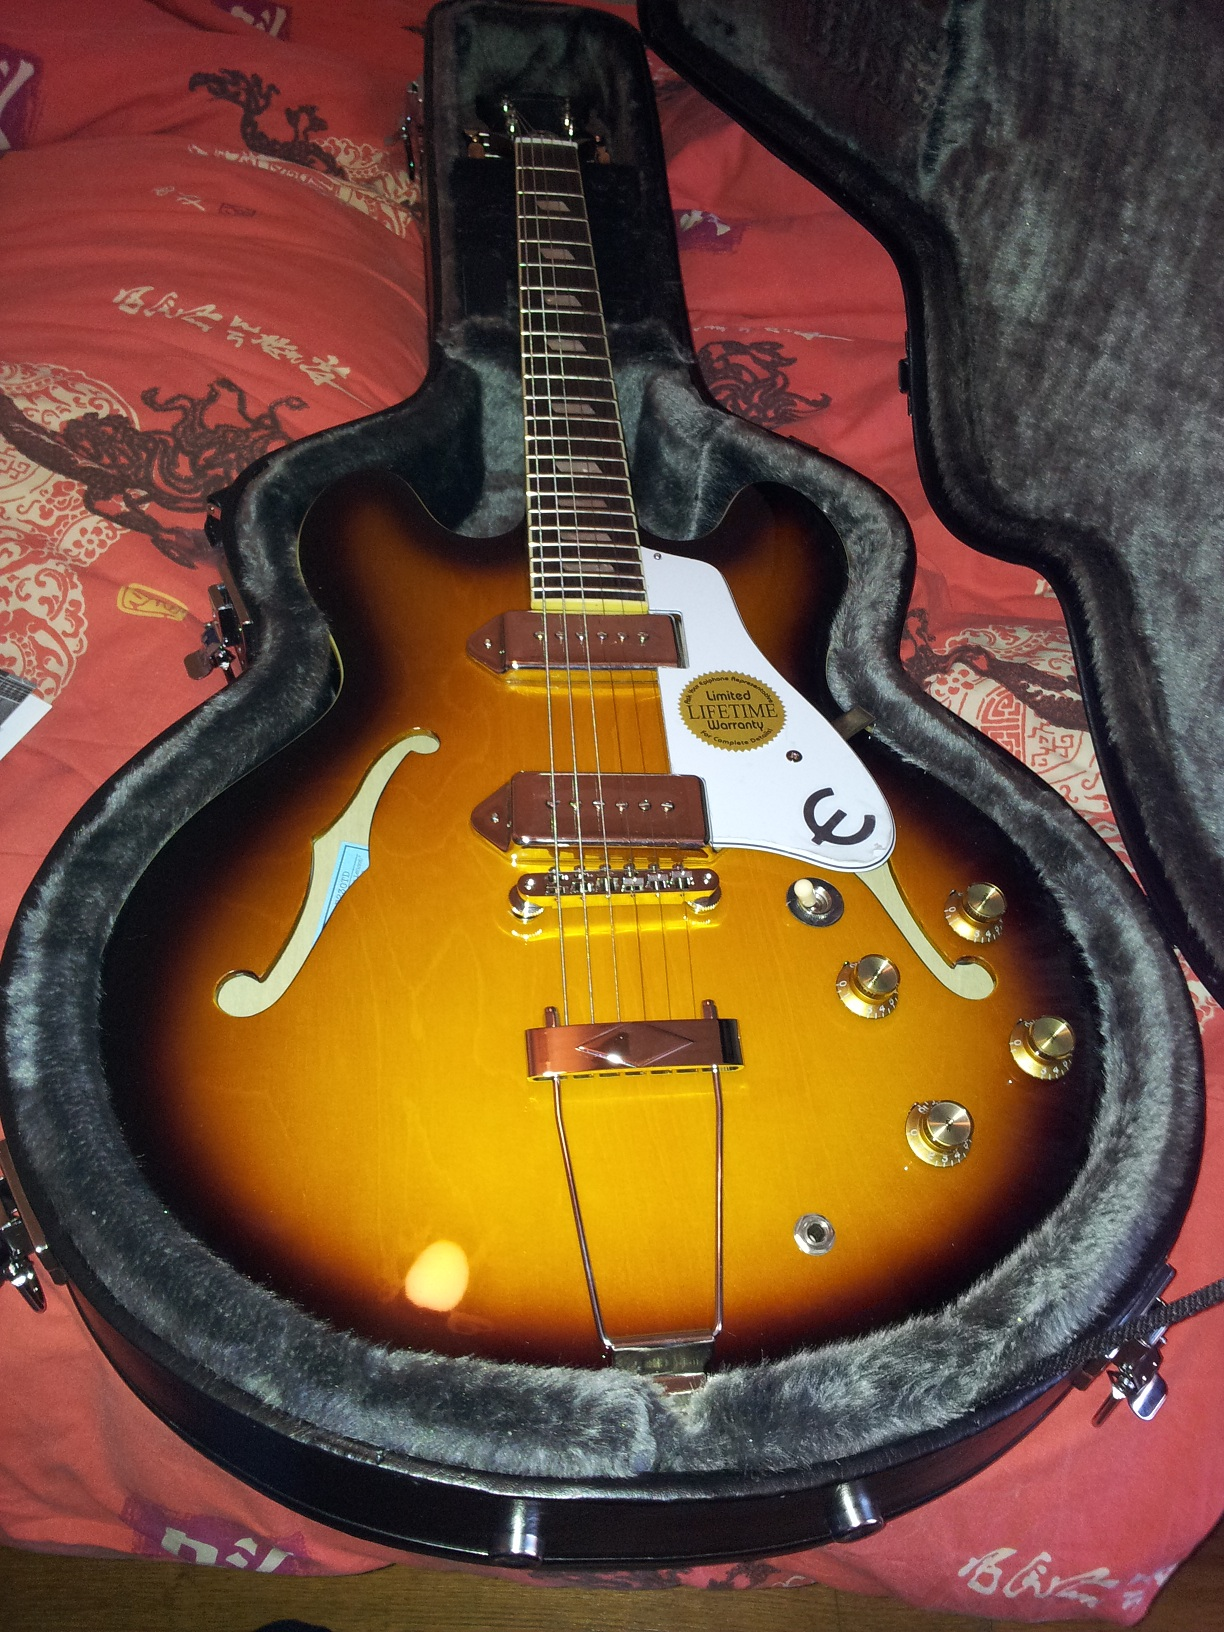 epiphone casino inspired by john lennon